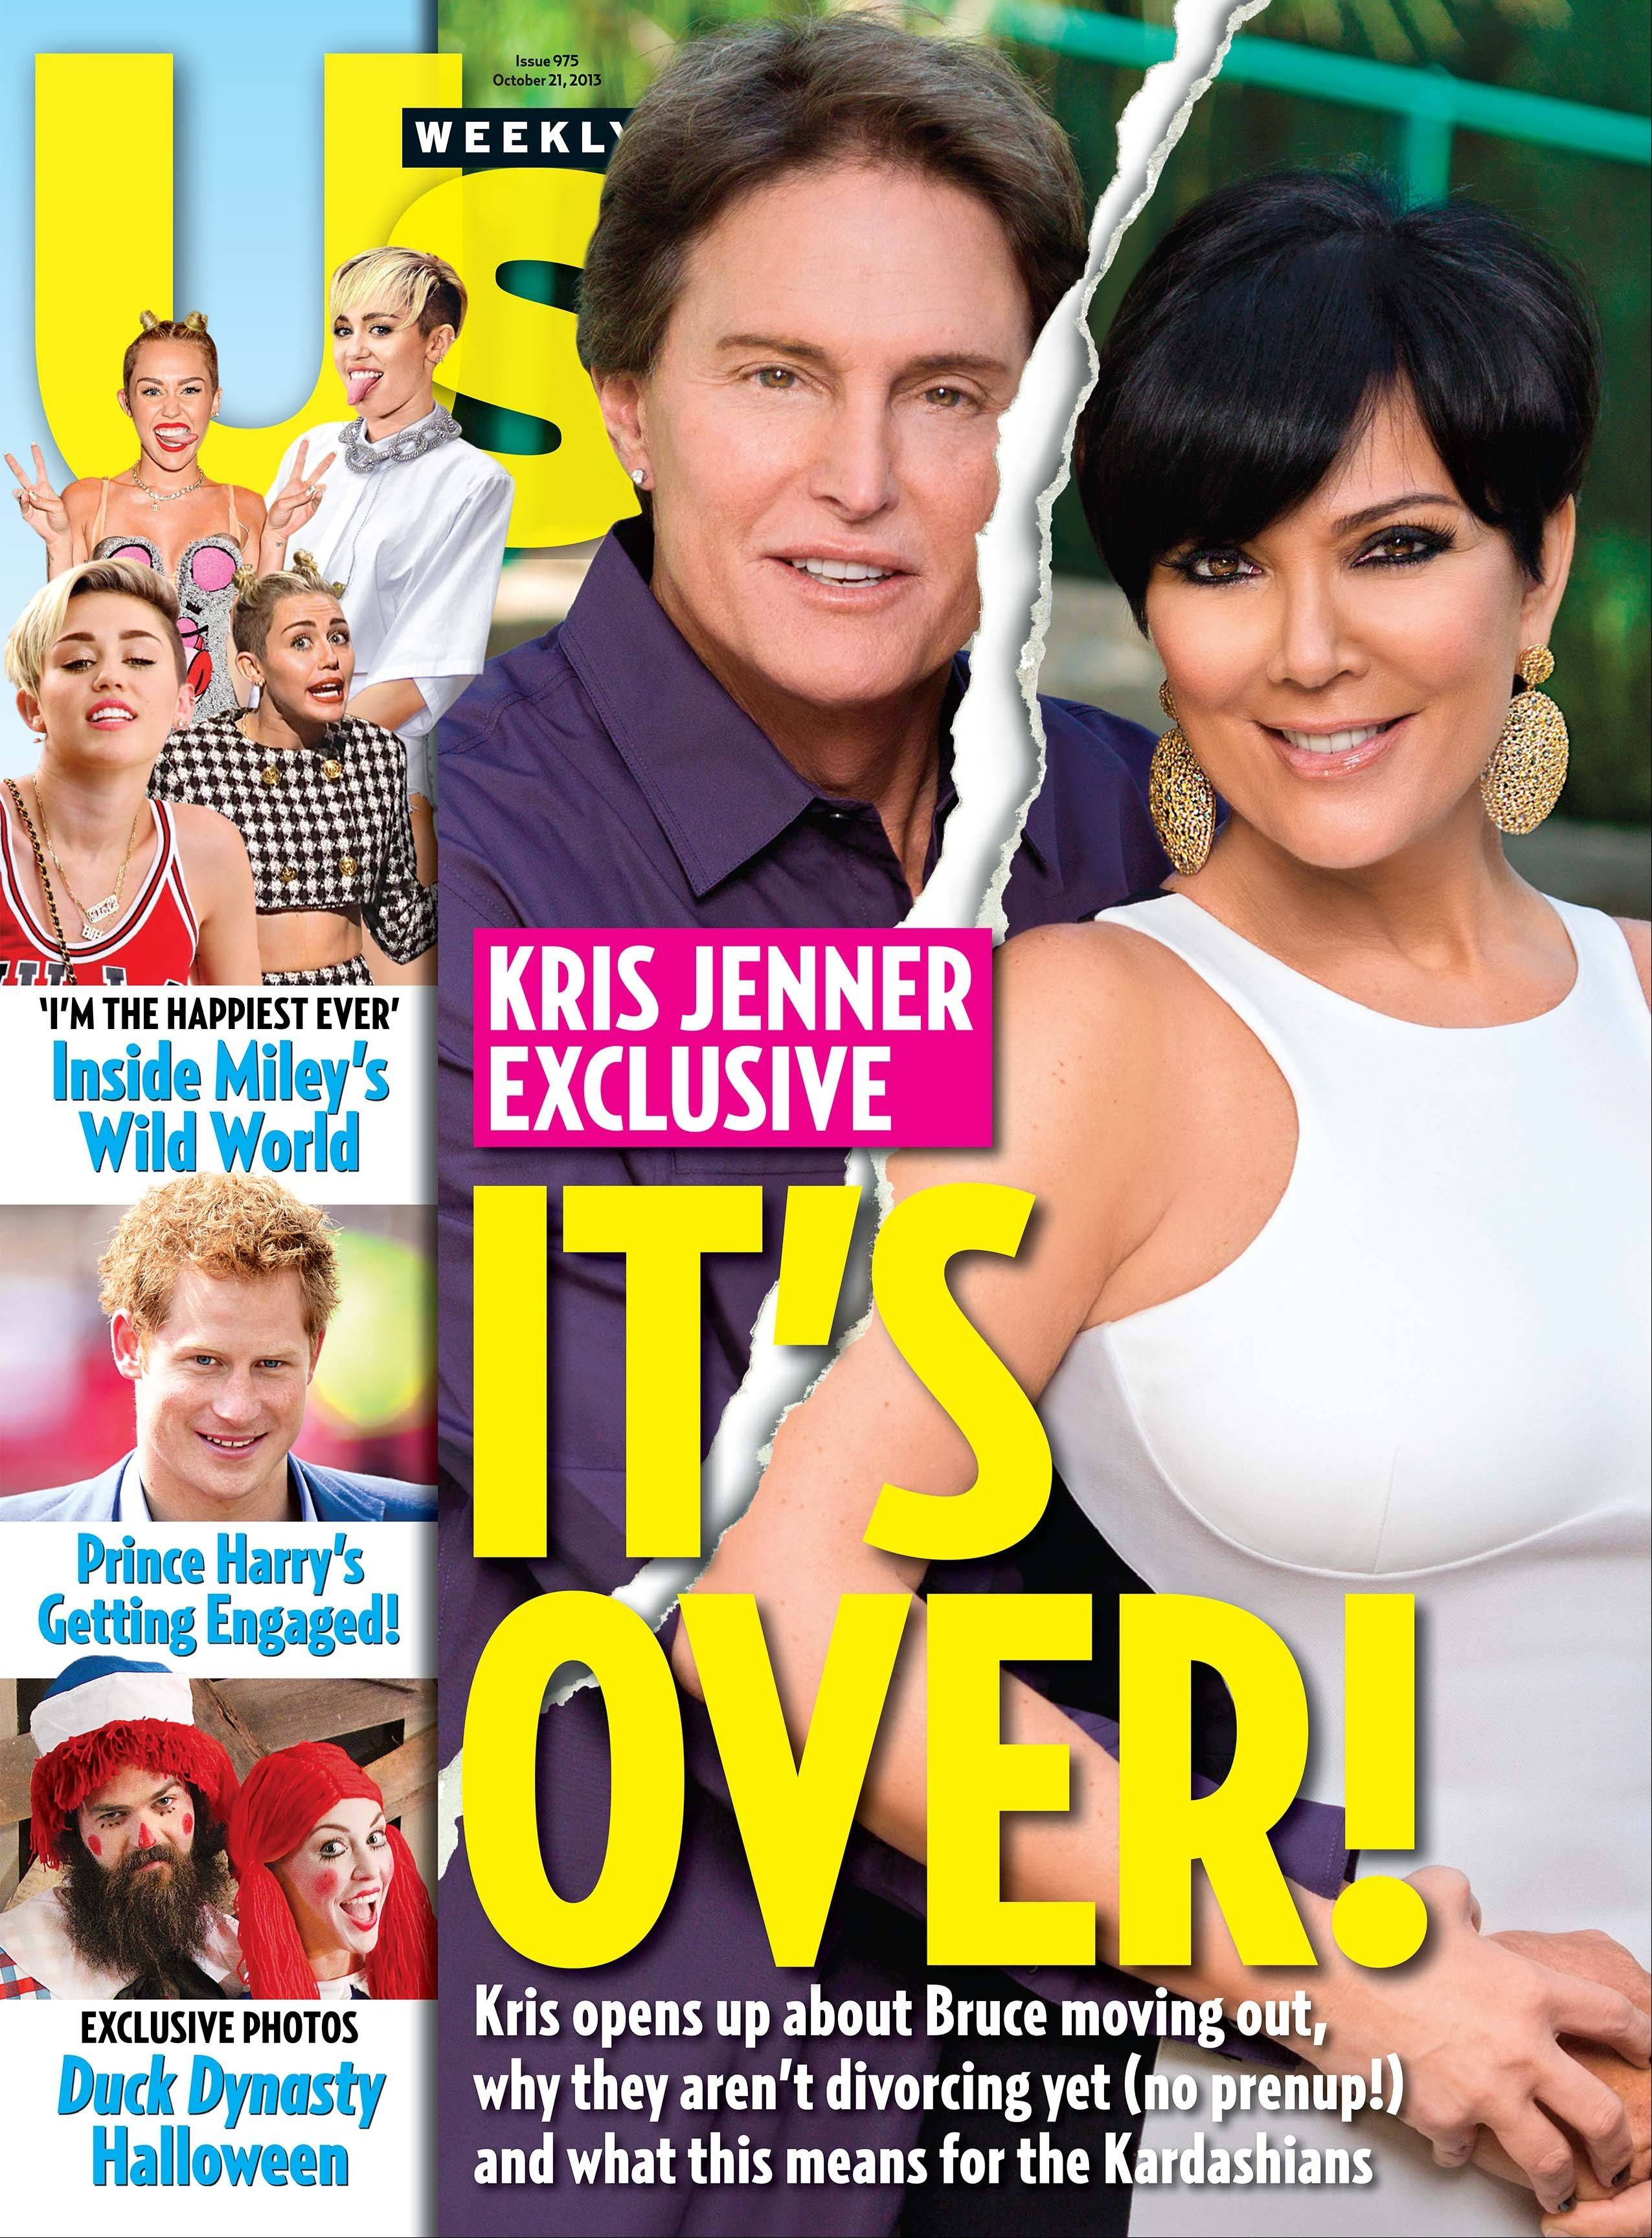 Bruce and Kris Jenner have confirmed they've split and have been separated for a year.